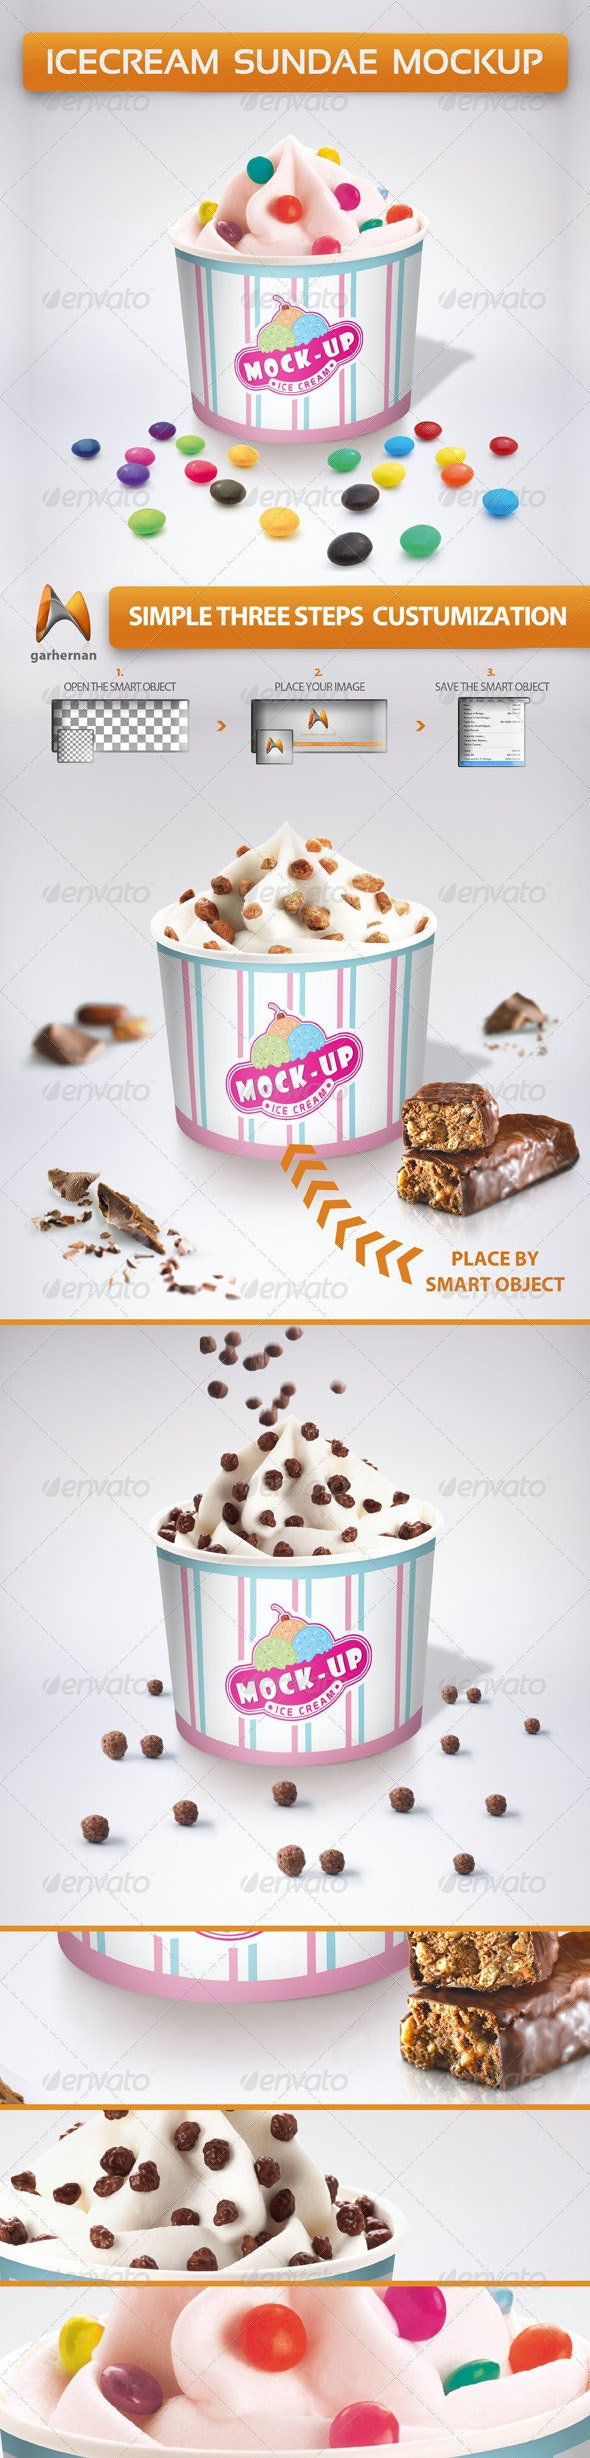 Ice Cream Sundae Mockup - Product Mock-Ups Graphics